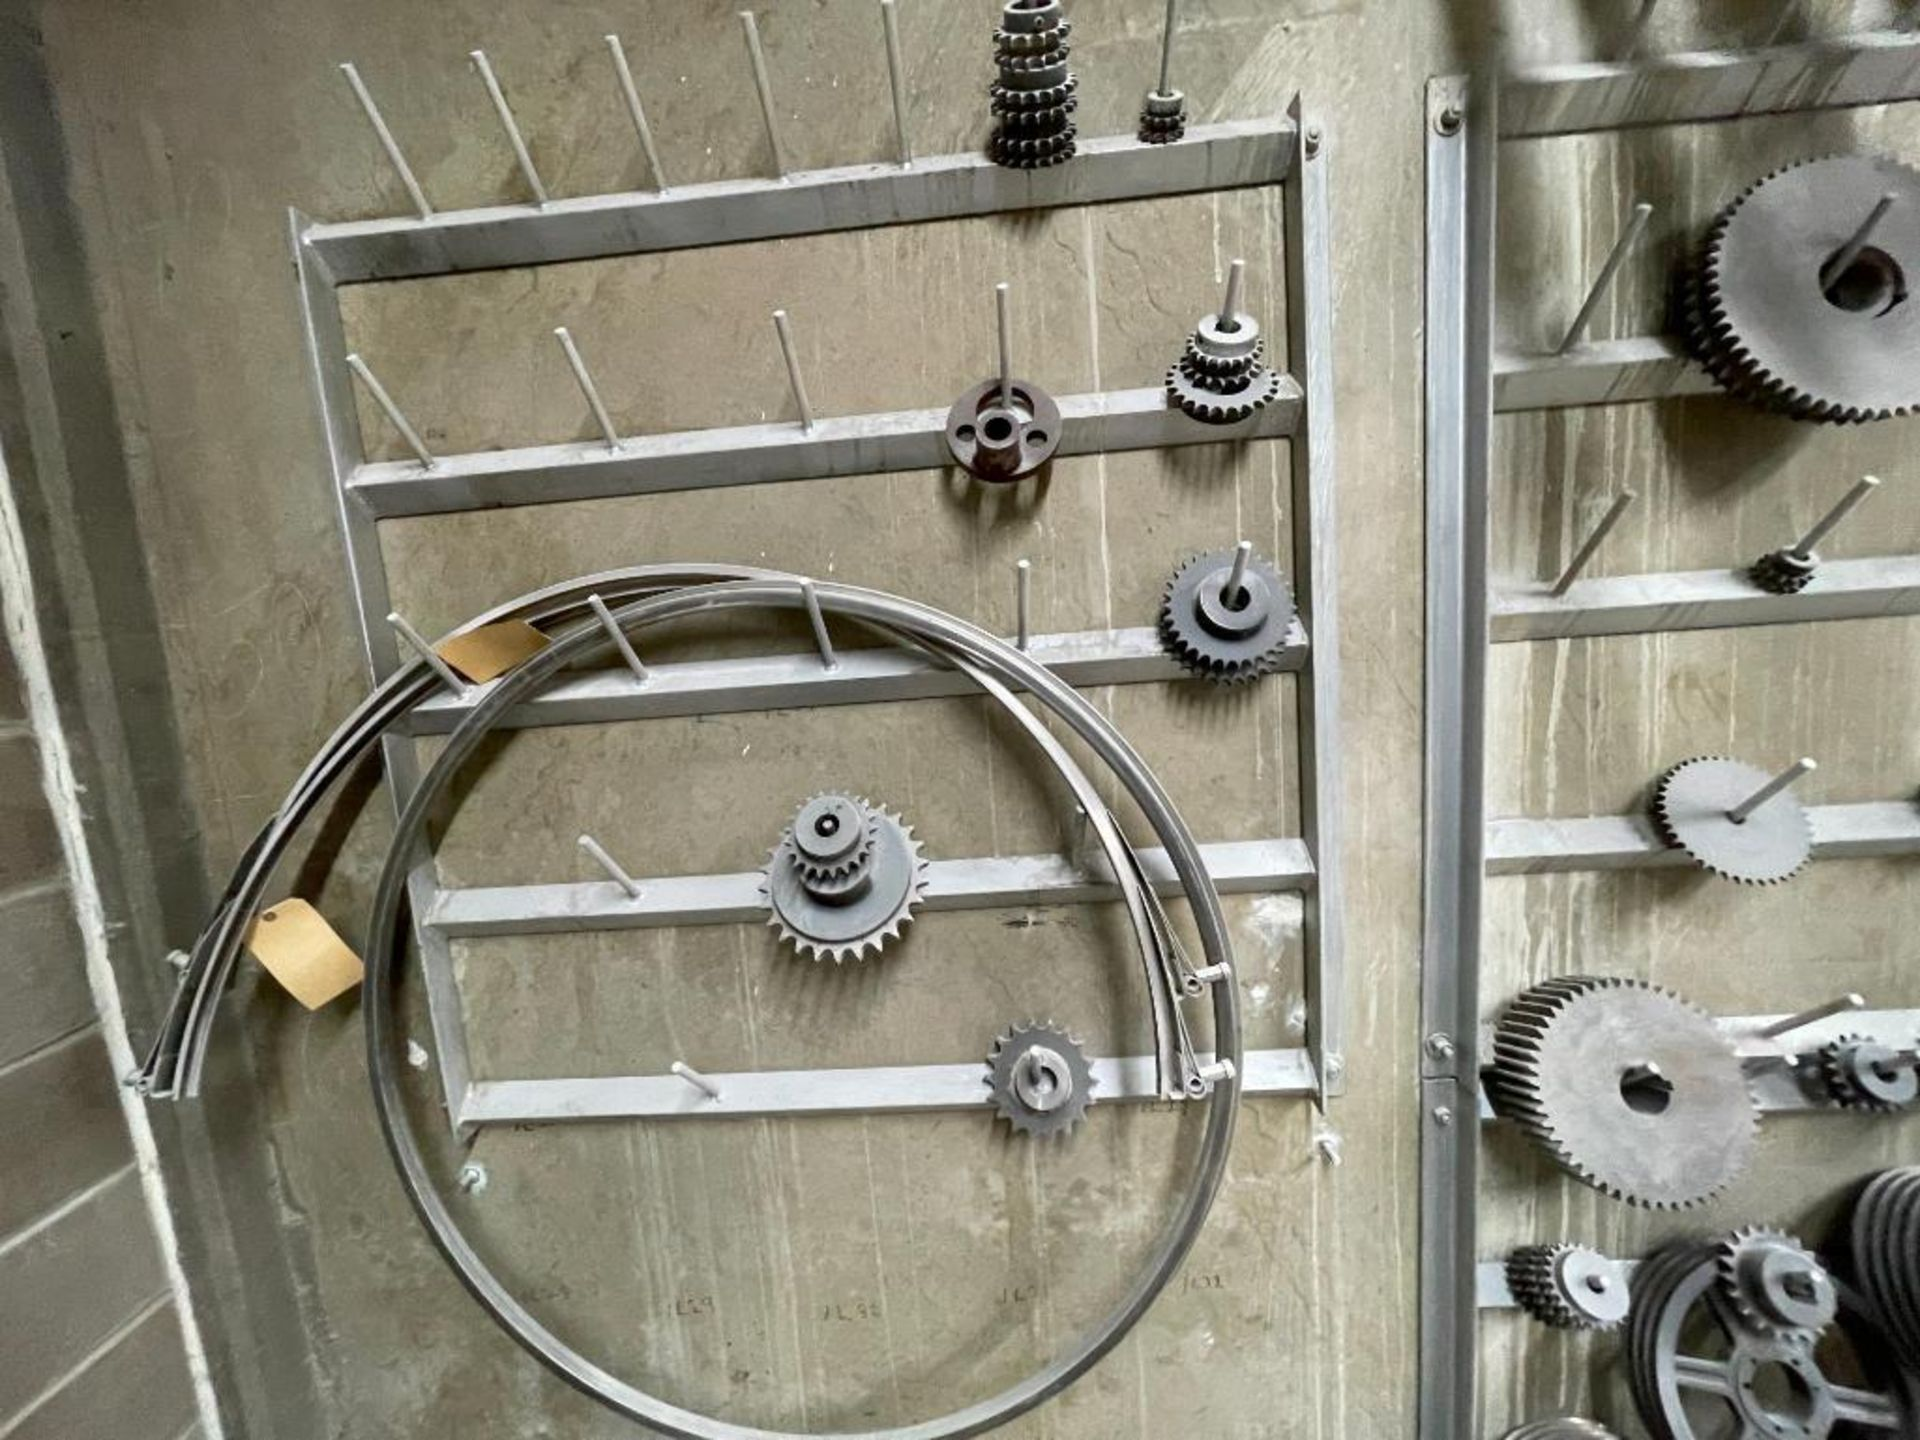 gears and pulleys - Image 15 of 17